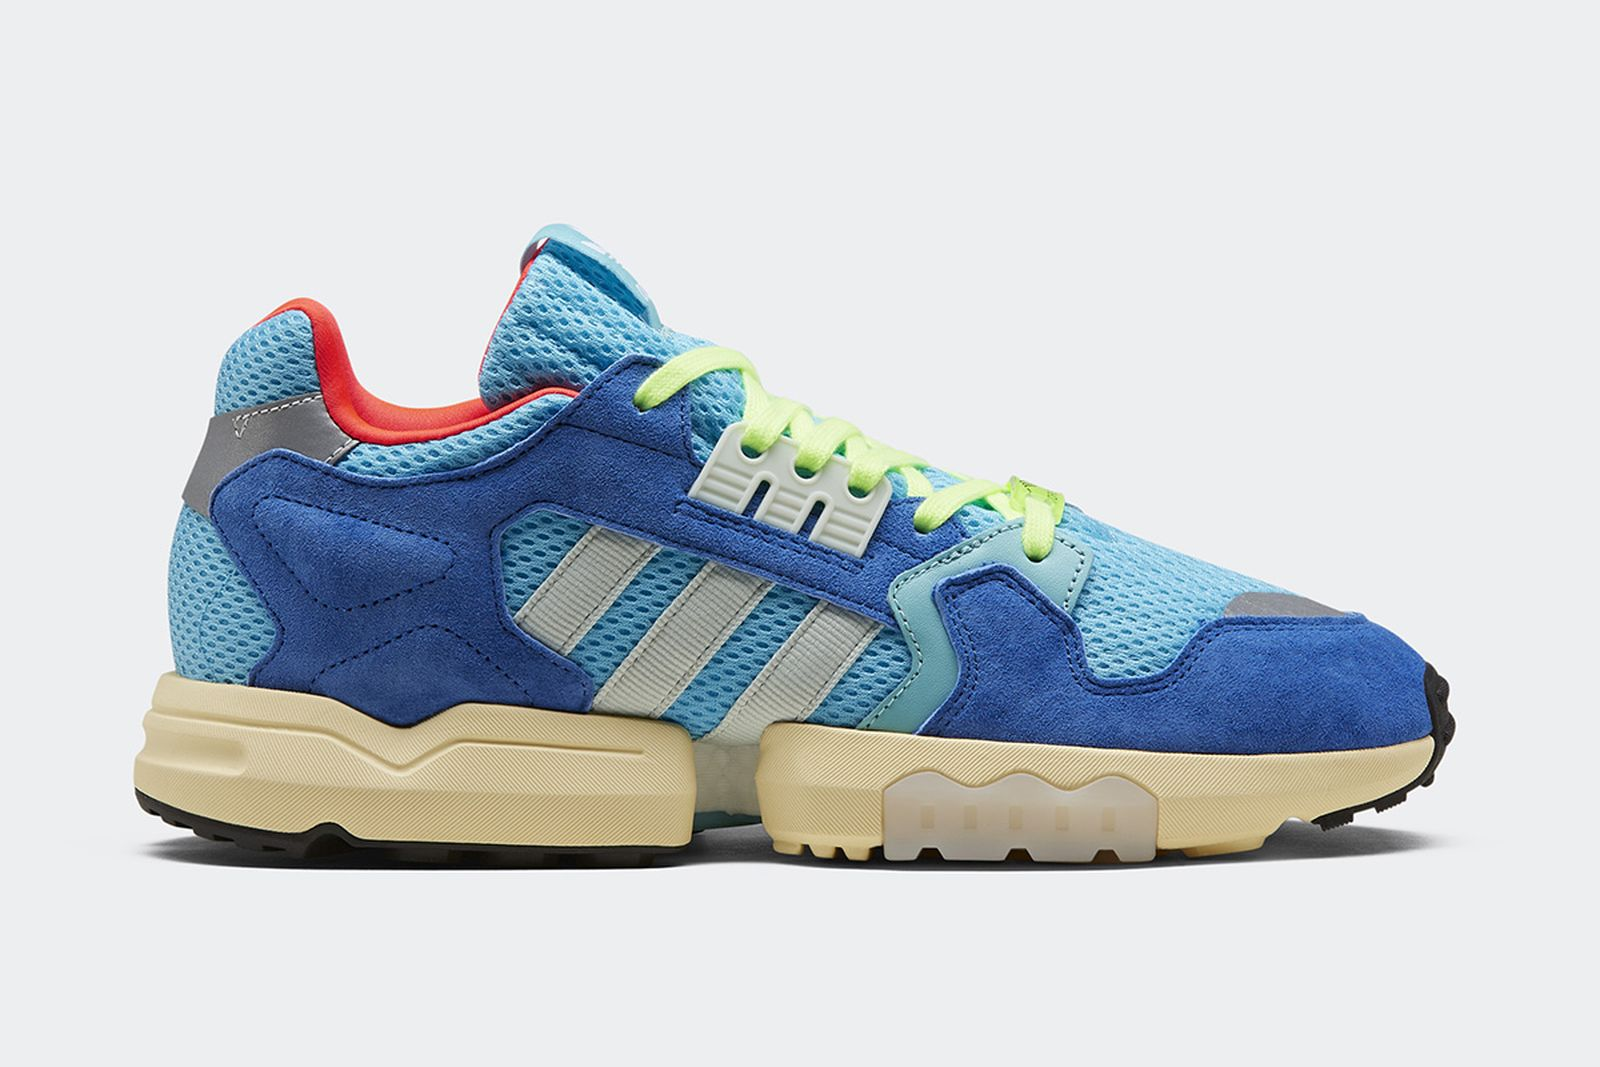 Hong Kong entrenador Hito  adidas ZX Torsion: Official Images & Where to Buy Today